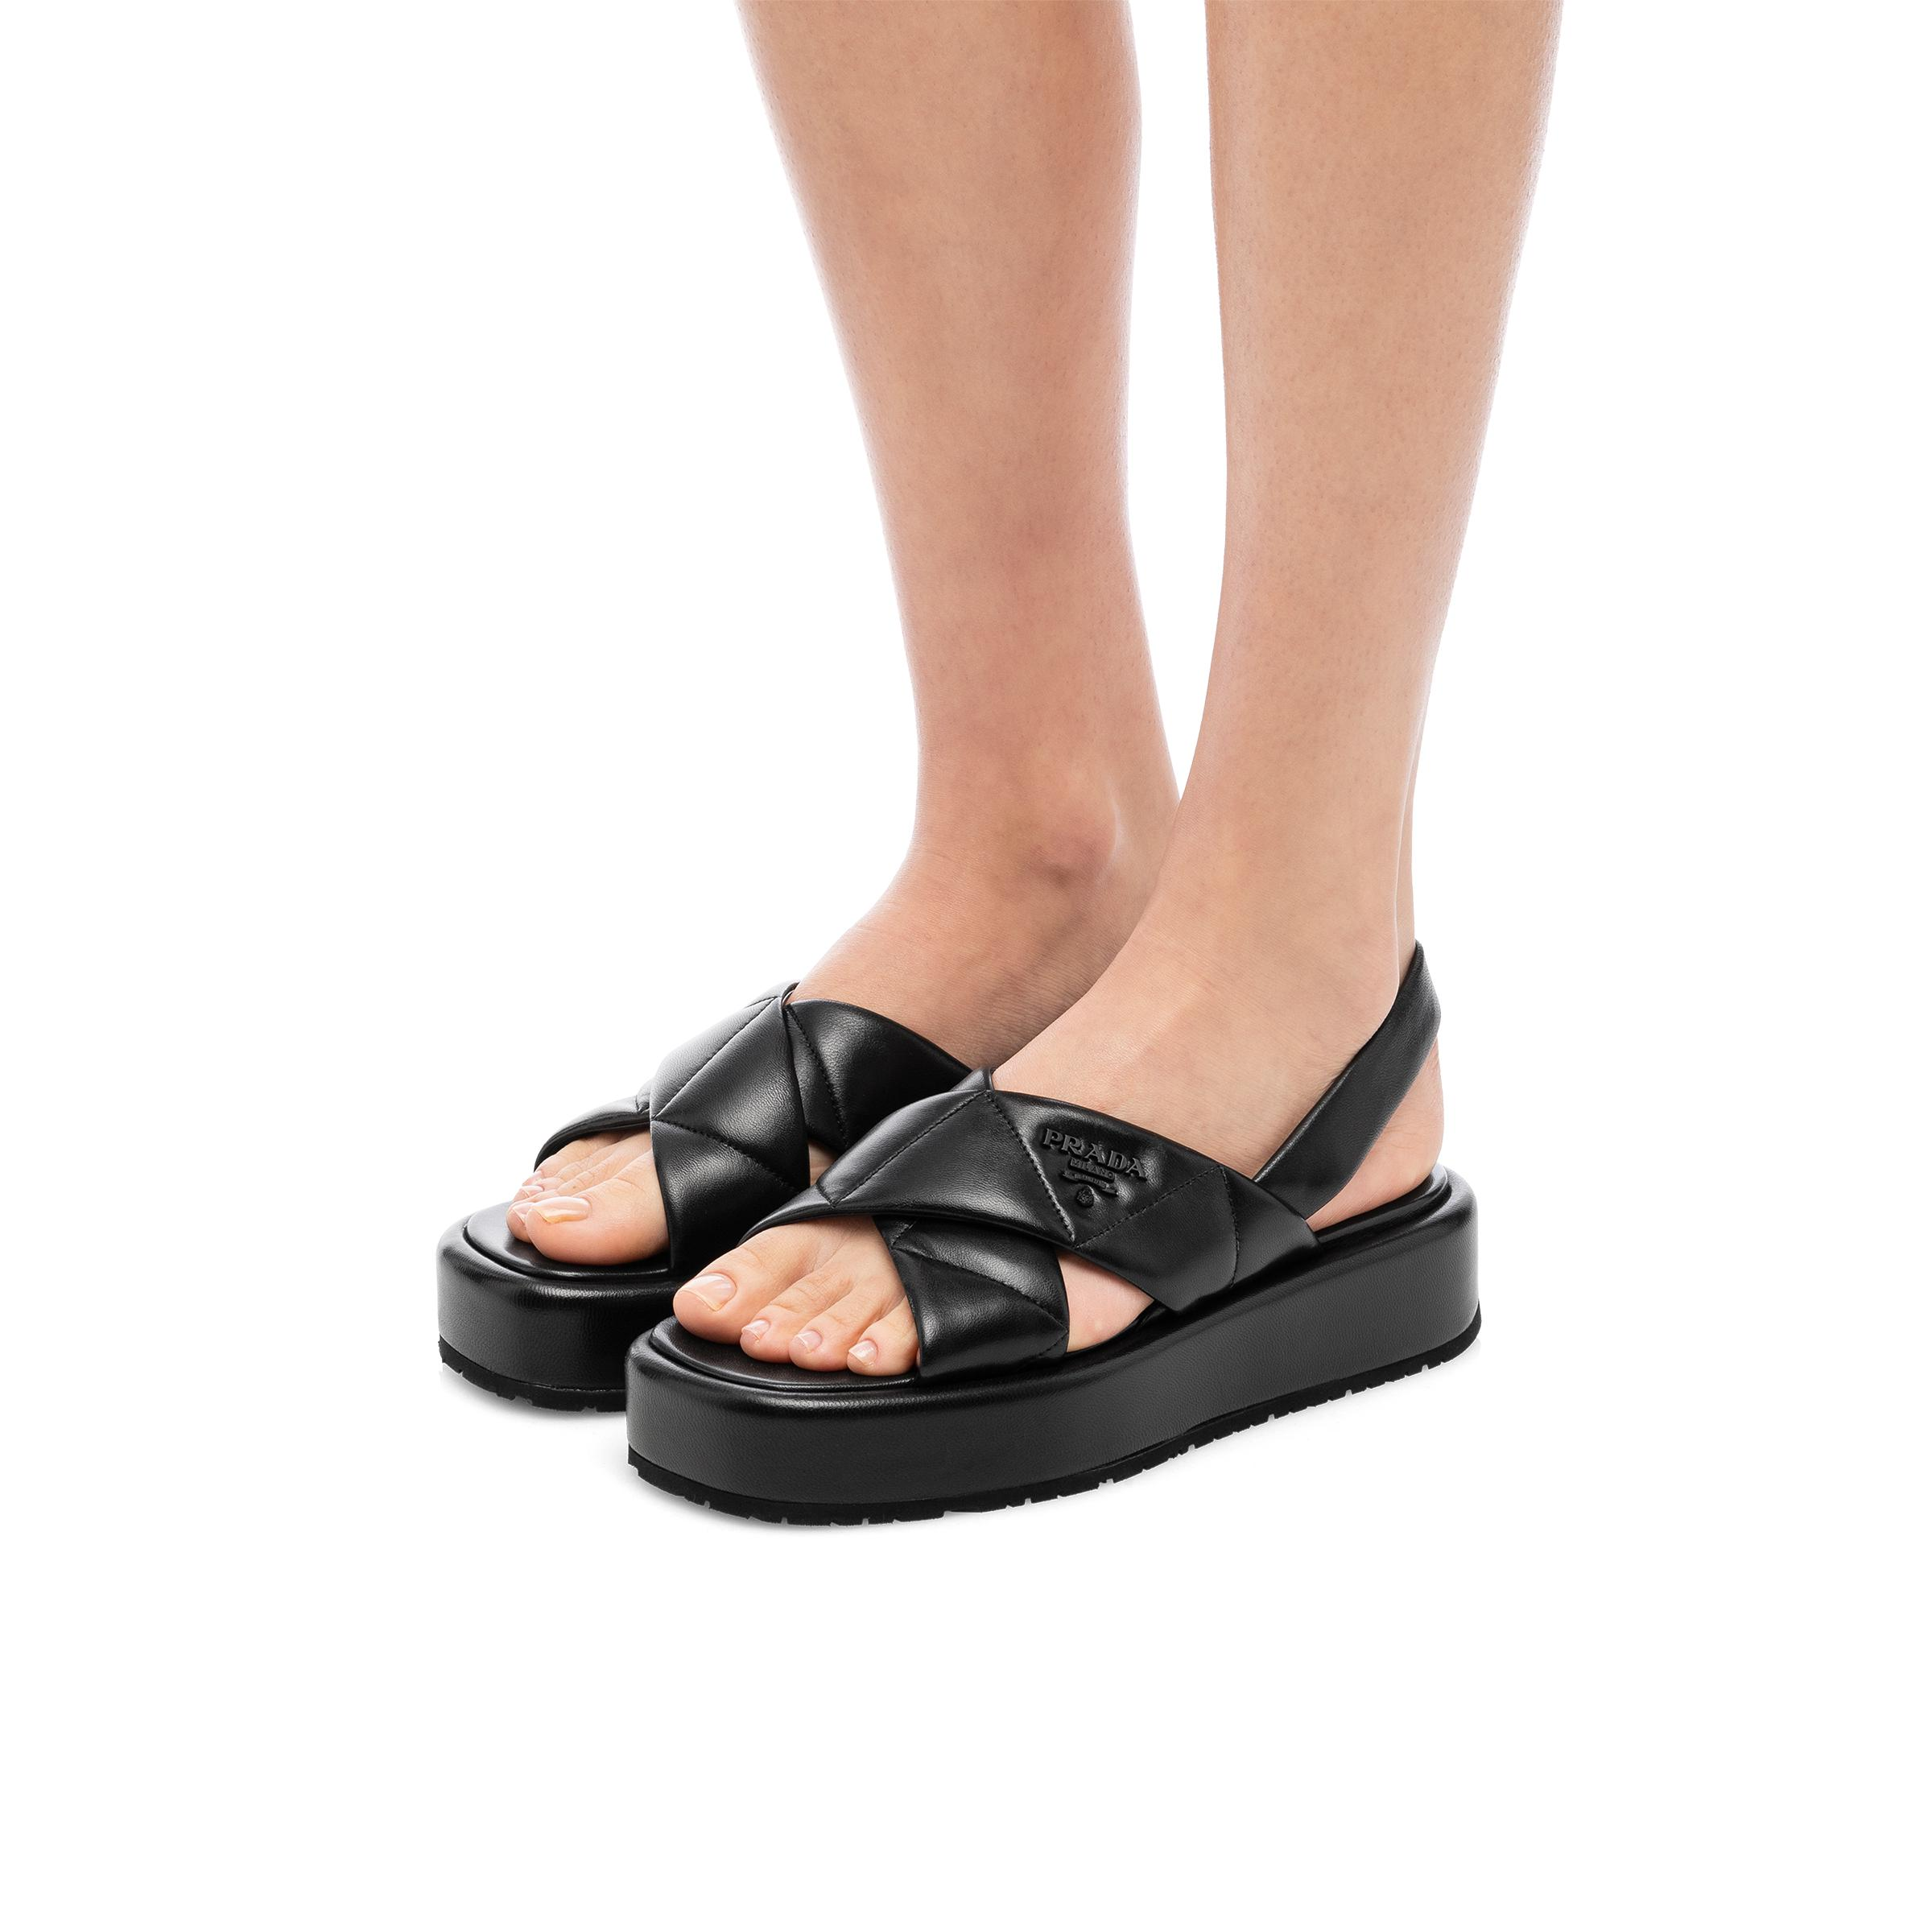 Quilted Nappa Leather Flatform Sandals Women Black 4